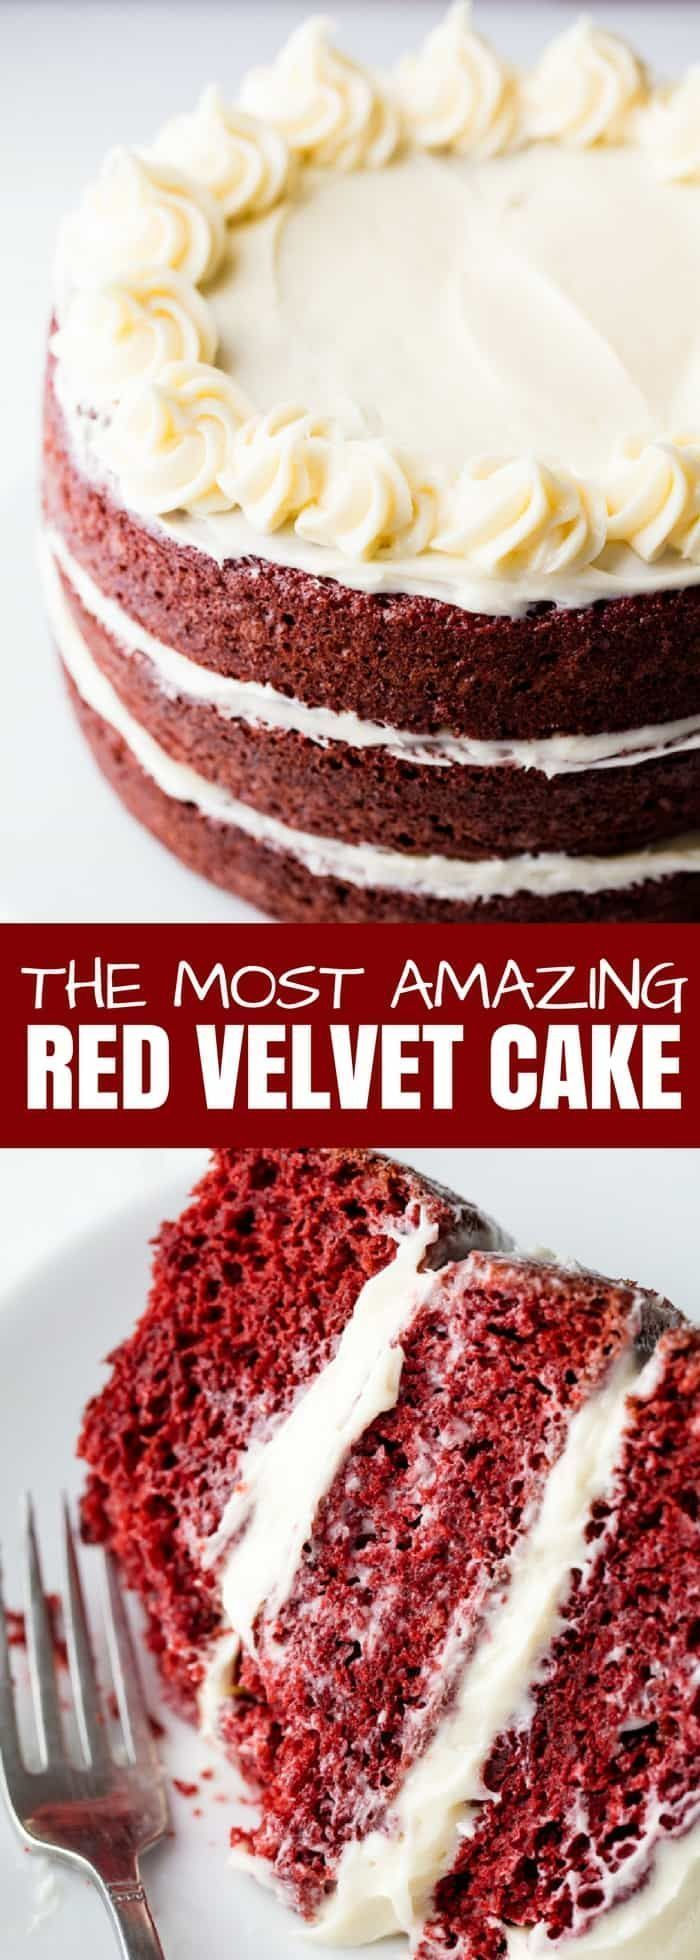 Most Amazing Red Velvet Cake The Most Amazing Red Velvet Cake recipe is moist, fluffy, and has the perfect balance between acidity and chocolate. Top it off with cream cheeses frosting for the perfect Red Velvet Cake you've been dreaming of!The Most Amazing Red Velvet Cake recipe is moist, fluffy, and has the perfect balance between acidity and...